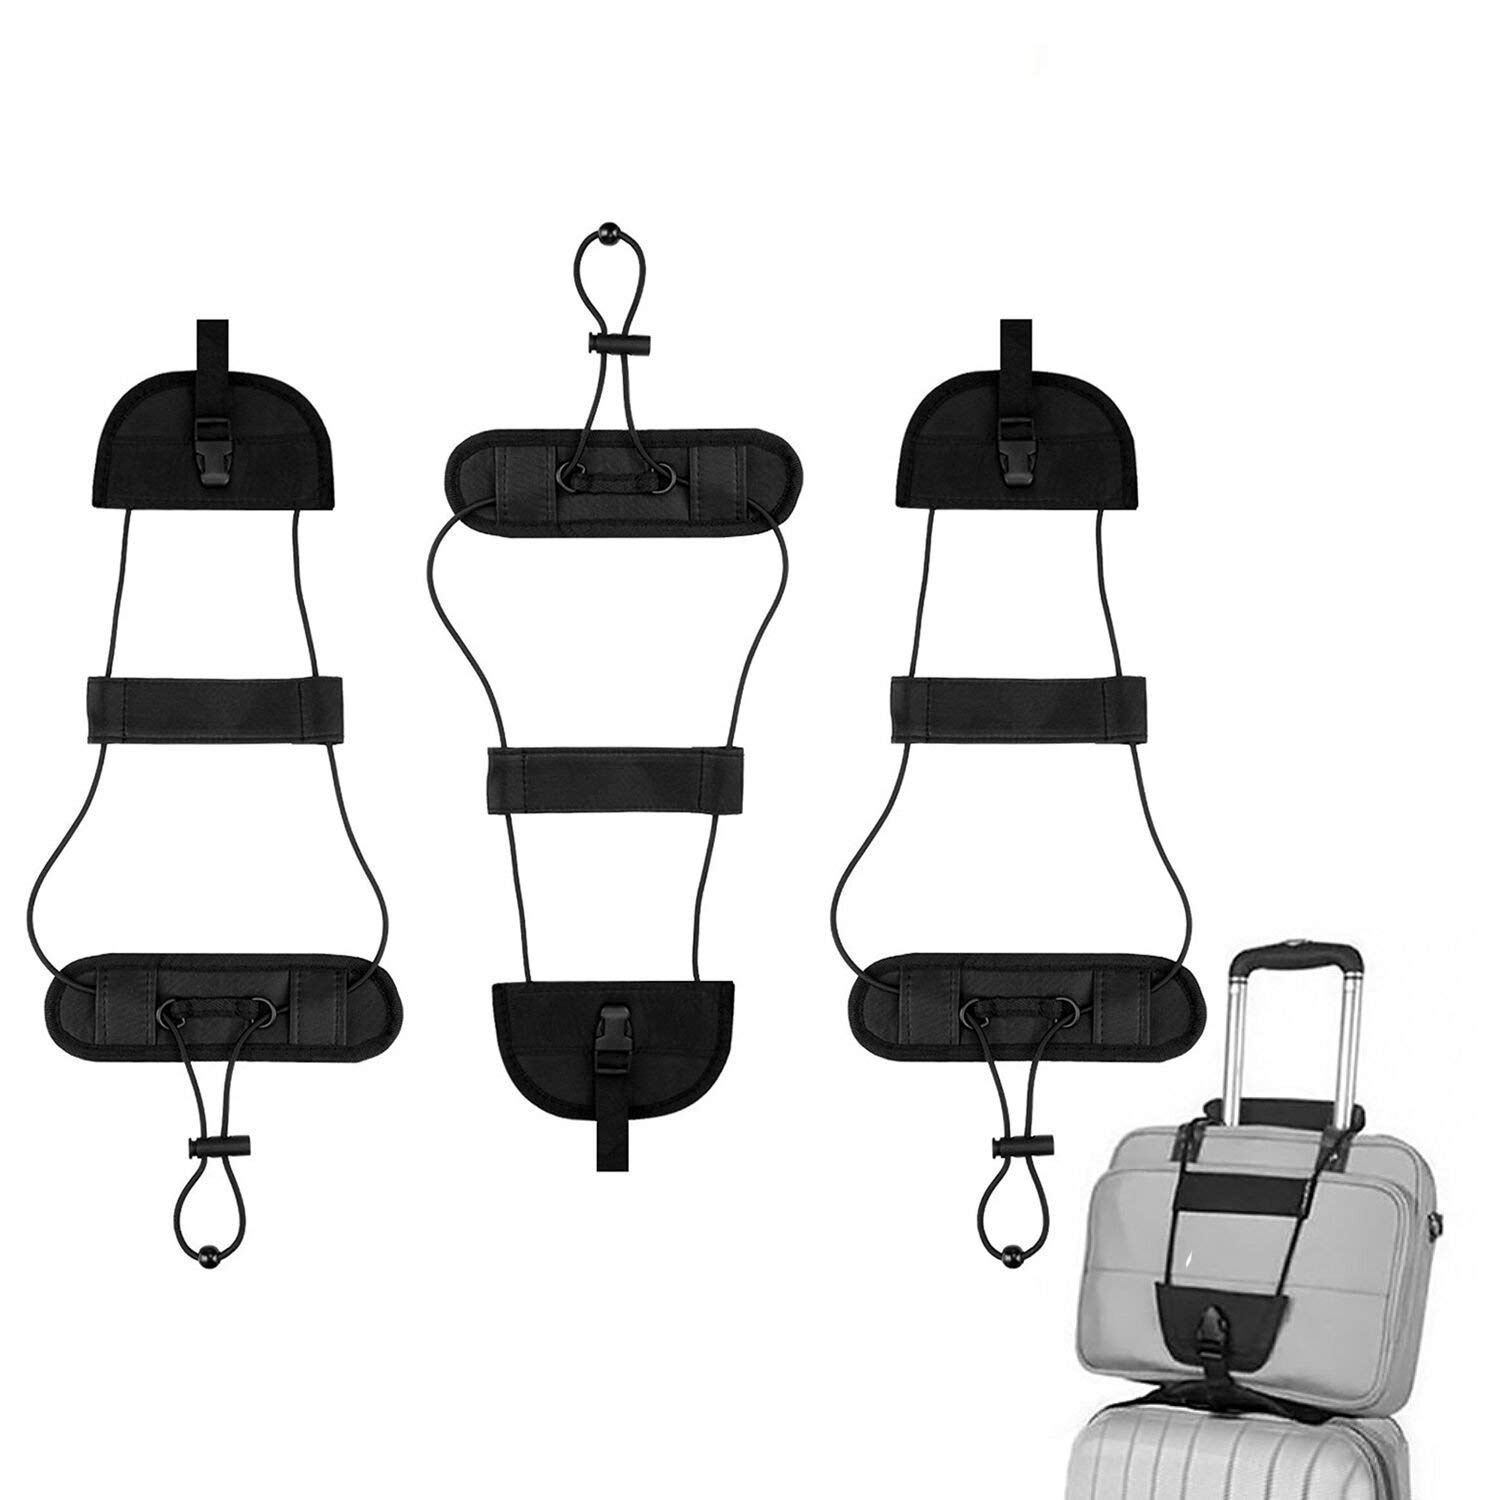 Lonew Bag Bungee, Luggage Straps Suitcase Adjustable Belt - Lightweight and Durable Travel Bag Accessories